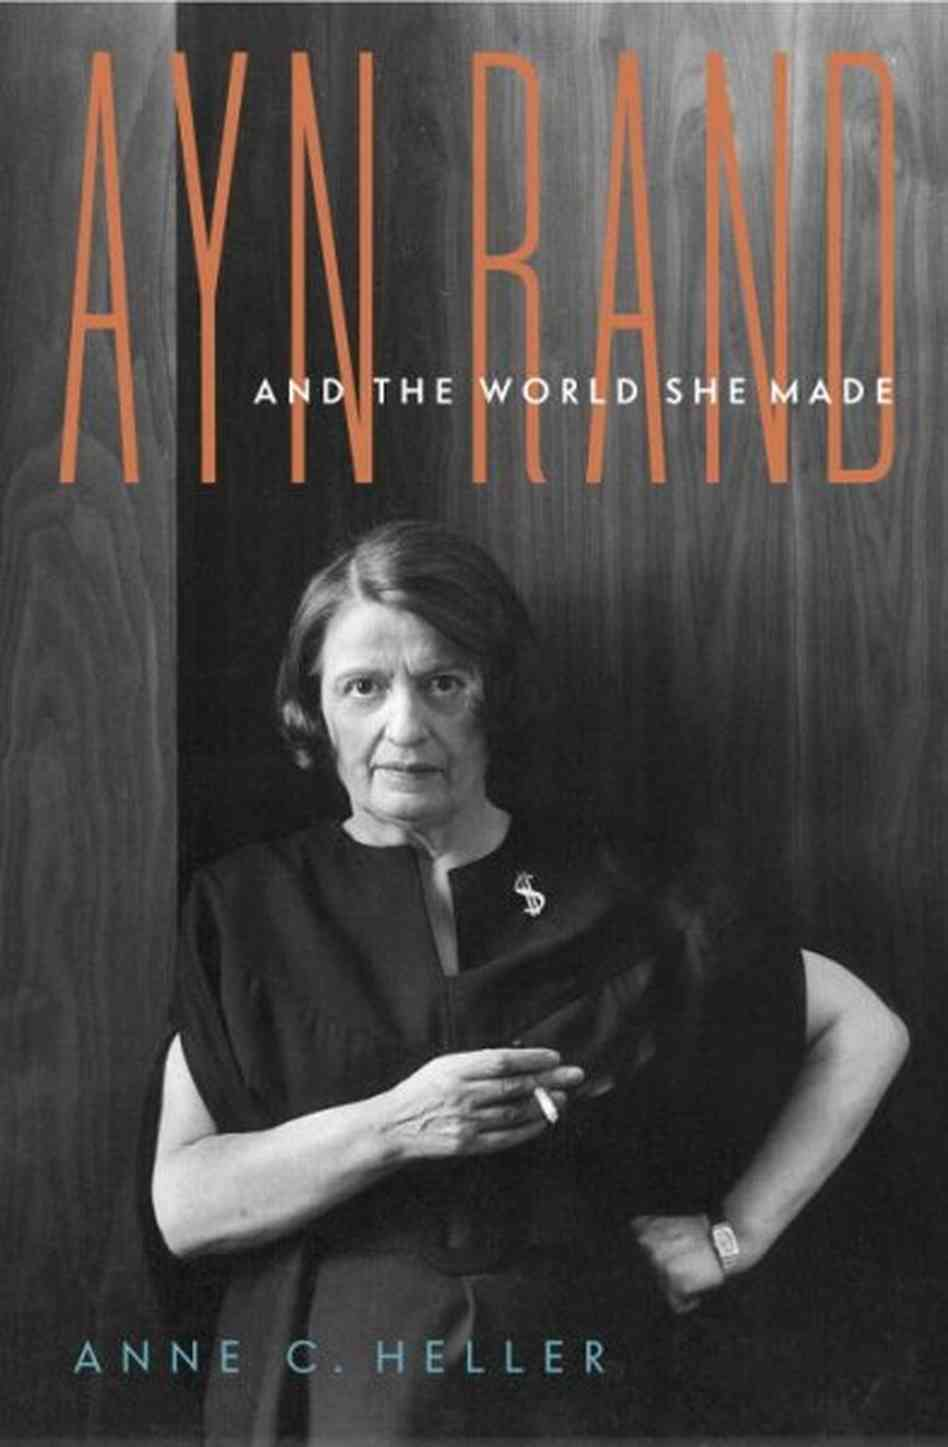 Ayn Rand and the World She